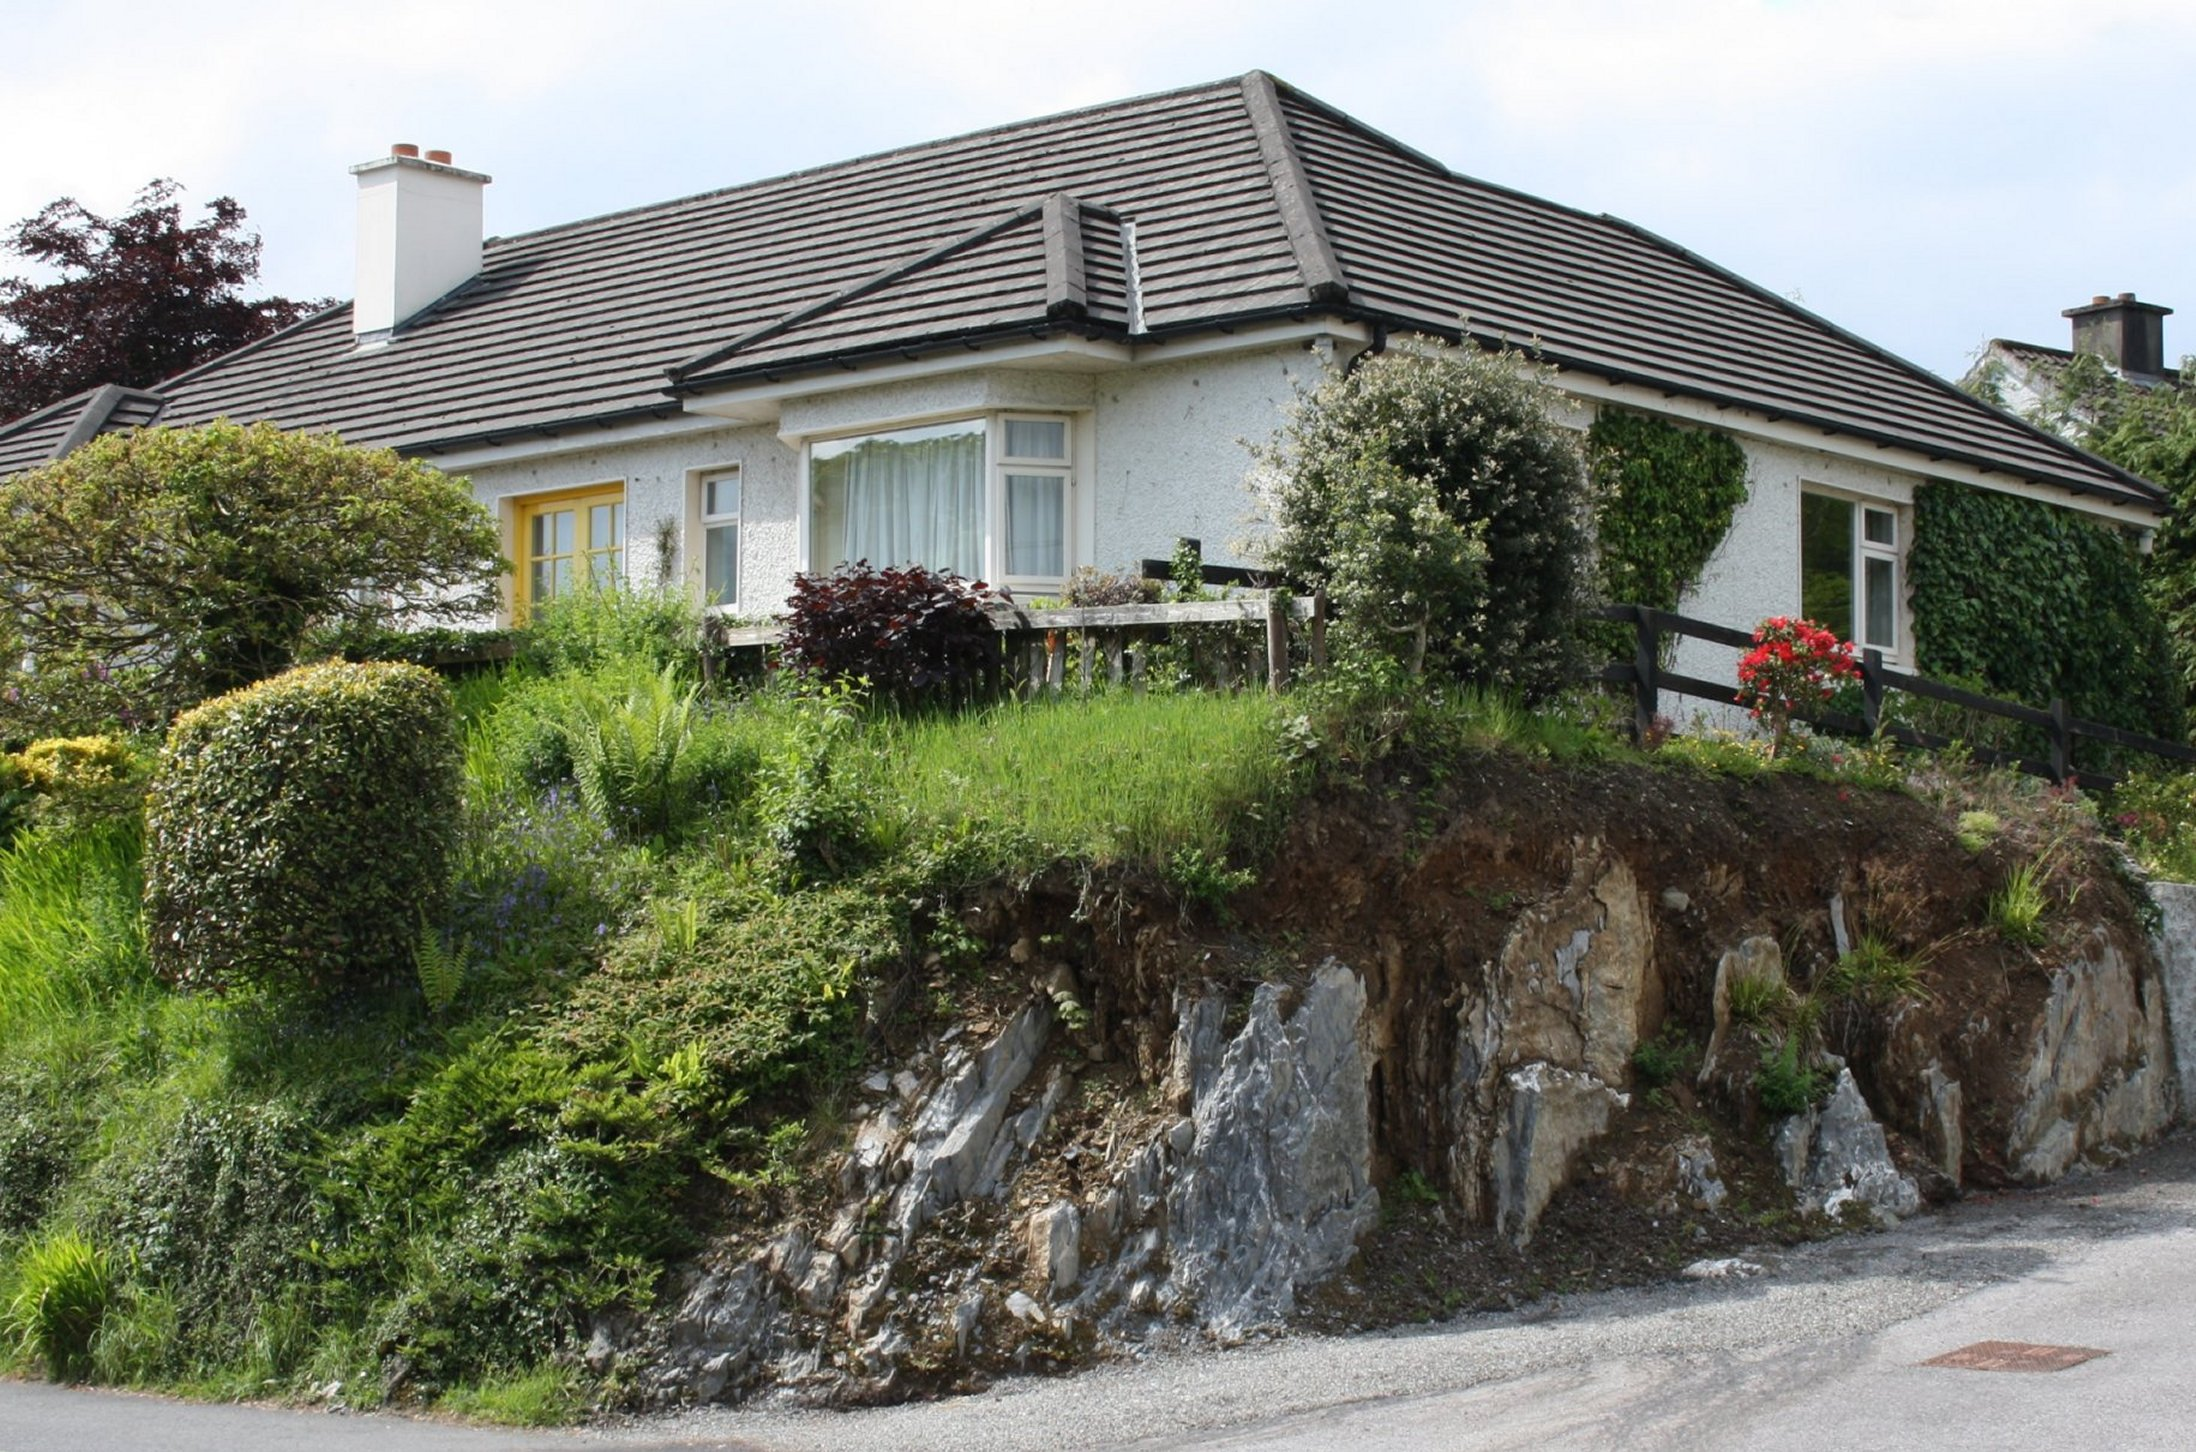 photos of Rockcrest selfcatering bungalow, Kenmare